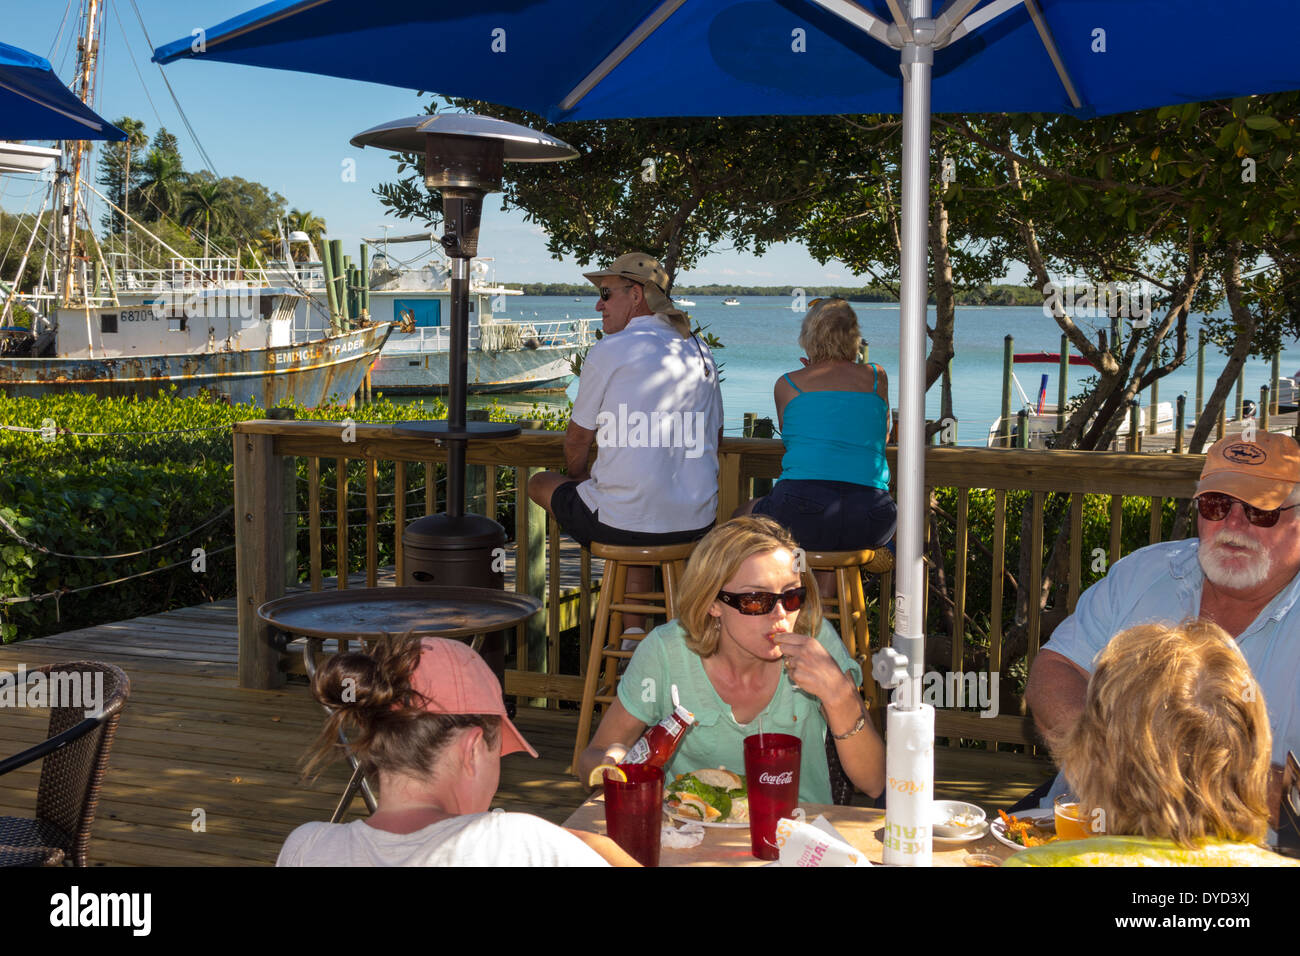 Port Charlotte en Floride Pêche Placida Harbour Restaurant restaurant Gasparilla Bay Golfe du Mexique Table de salle à manger en plein air des parapluies homme femme couple co Photo Stock